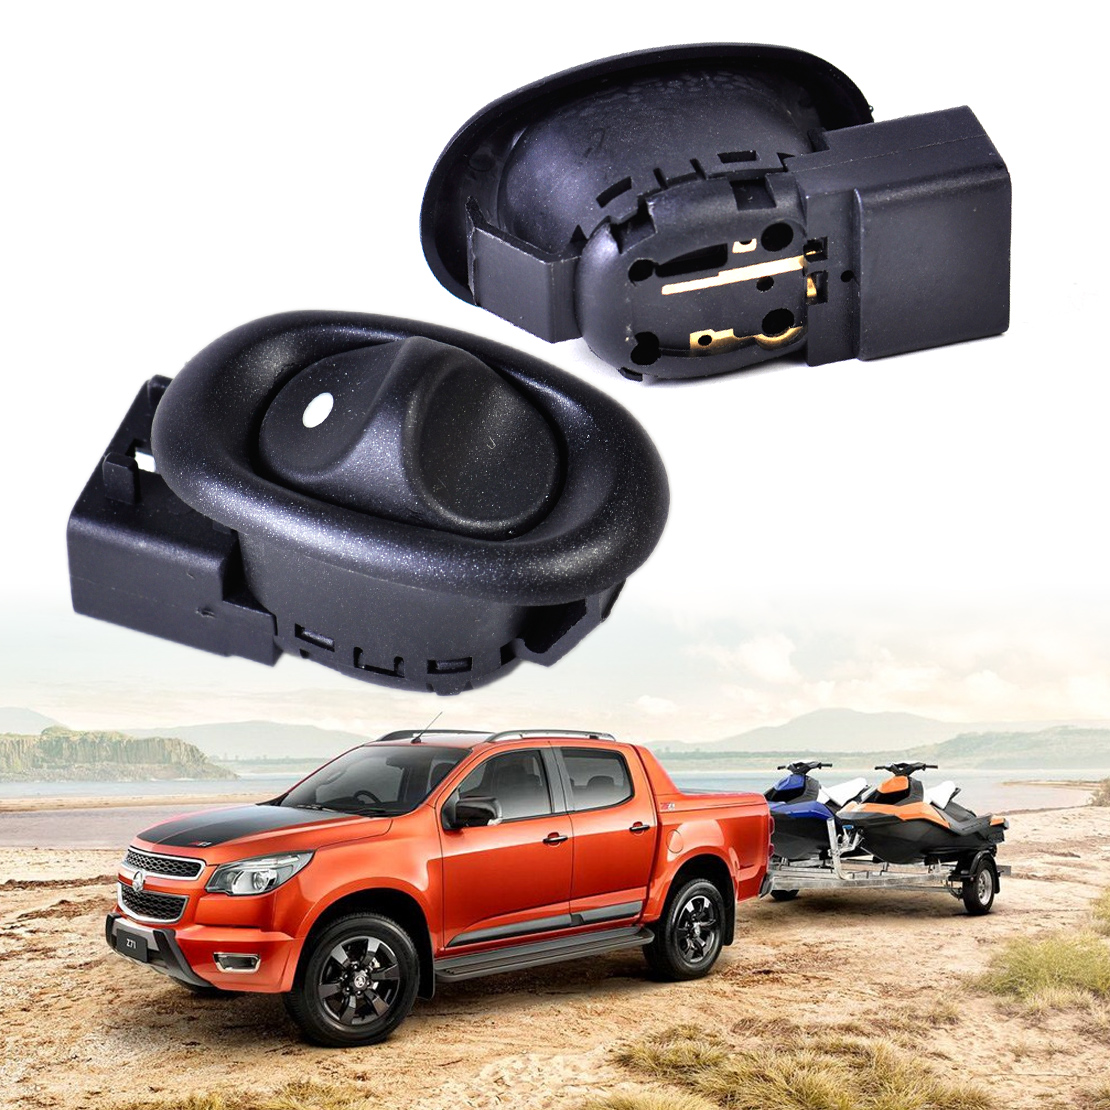 beler Black 5 pin 2Pcs Rear Electric Power Window Switch for Holden Commodore VT VY VZ VX Statesman WH 1999 2000 2001 2002